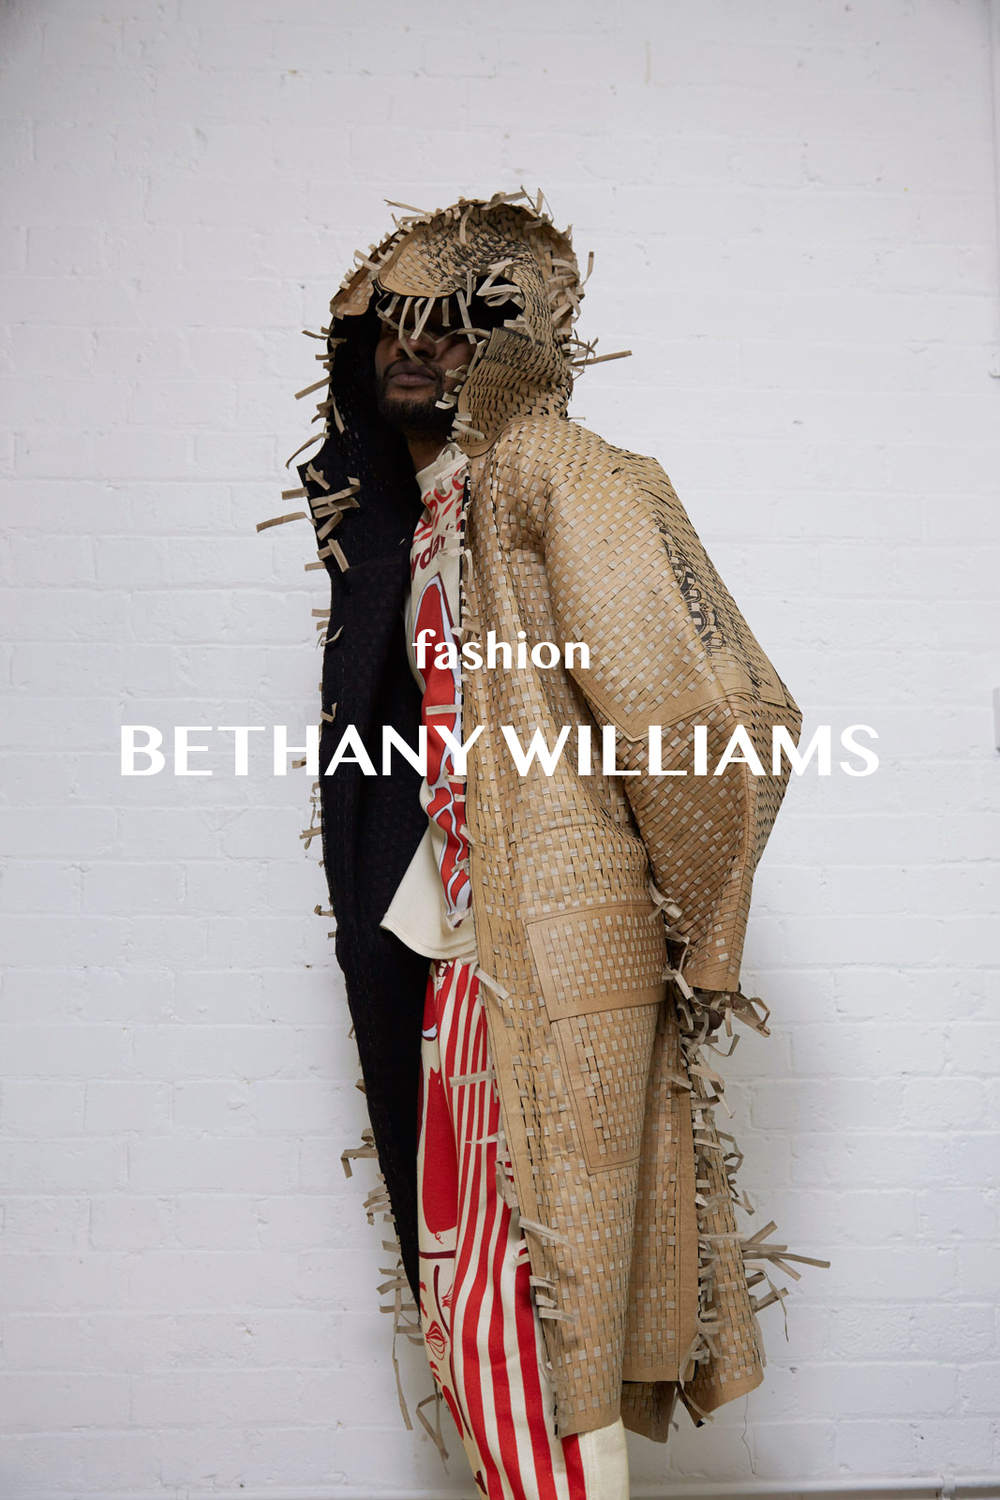 BETHANY WILLIAMS DEBUTS SUSTAINABLE BREADLINE COLLECTION March 12, 2016